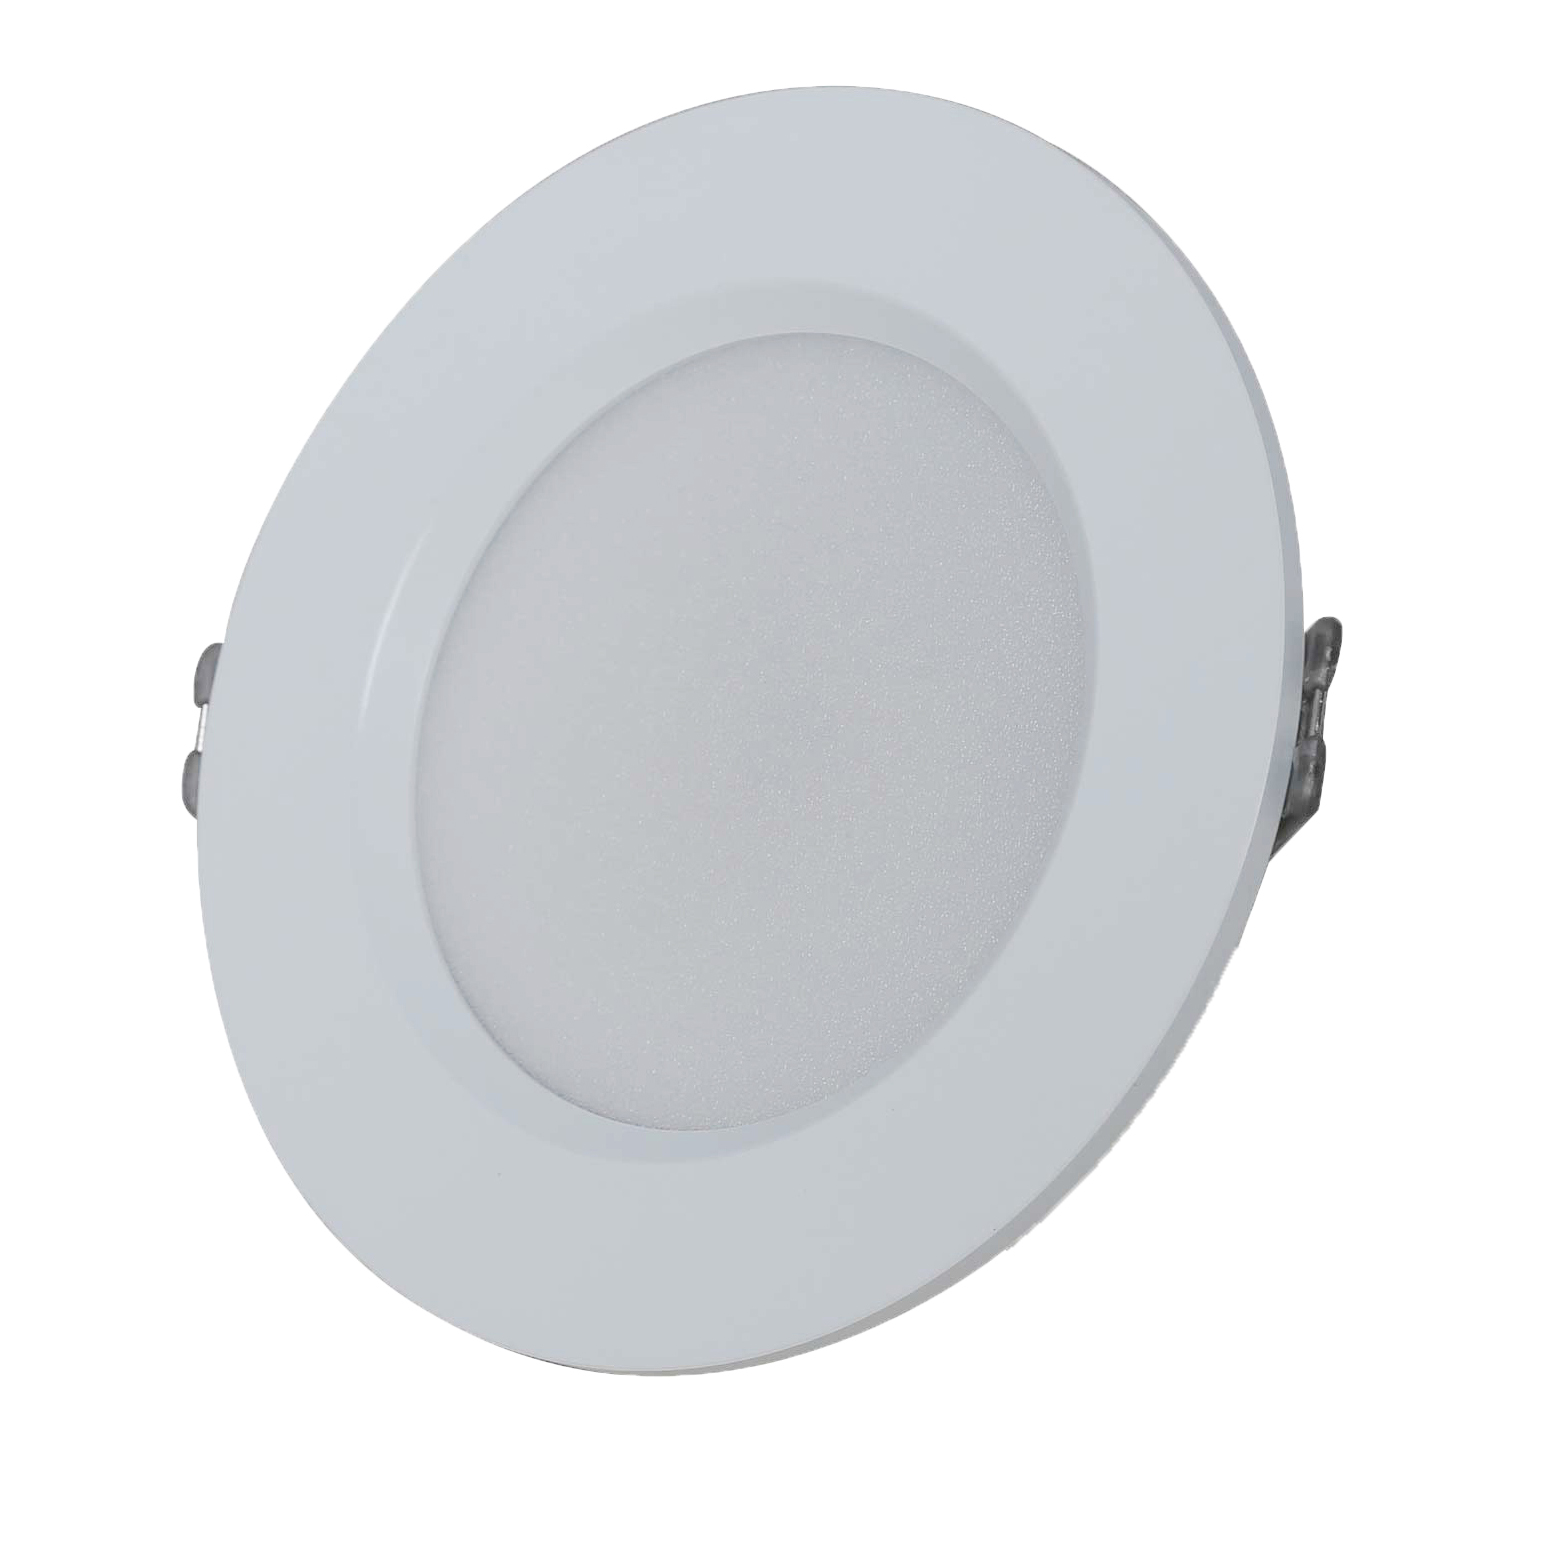 Den led downlight D AT12L 90 5W Đèn LED Downlight DAT 12L 90/5W SS